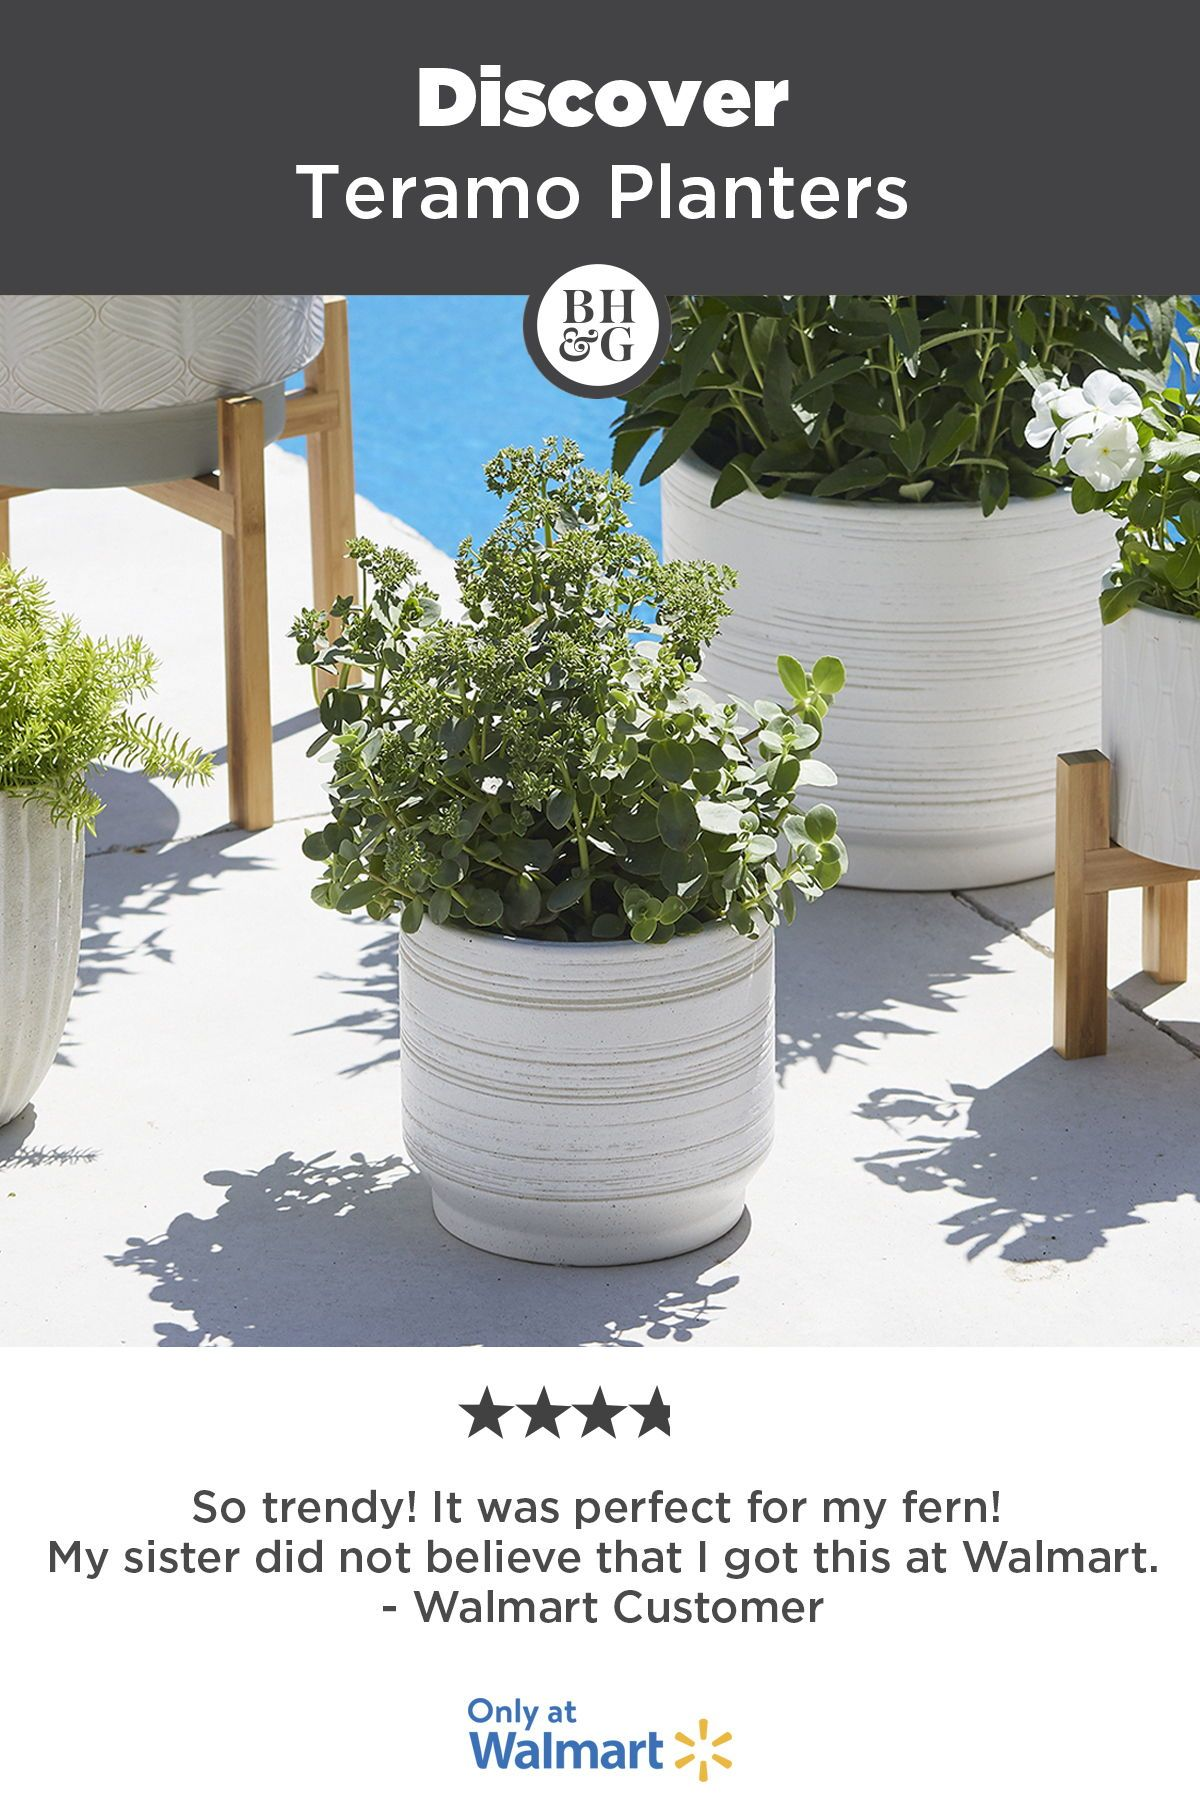 79d8d520e66bbaadc3e6ff68f91f9b99 - Better Homes And Gardens 16 Inch Round Planter